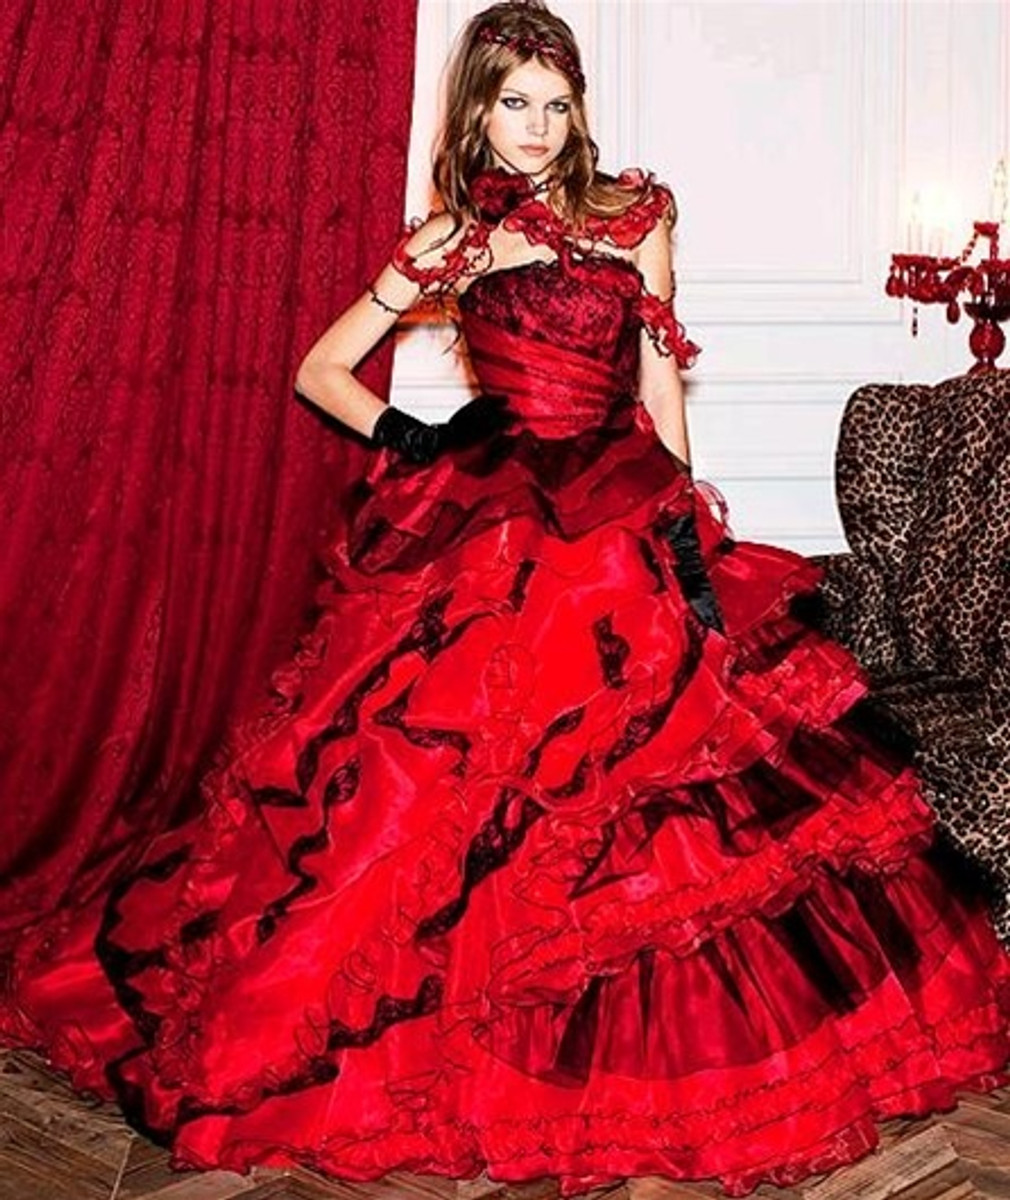 25+ cute Red wedding dresses ideas on Pinterest | Red and white ...